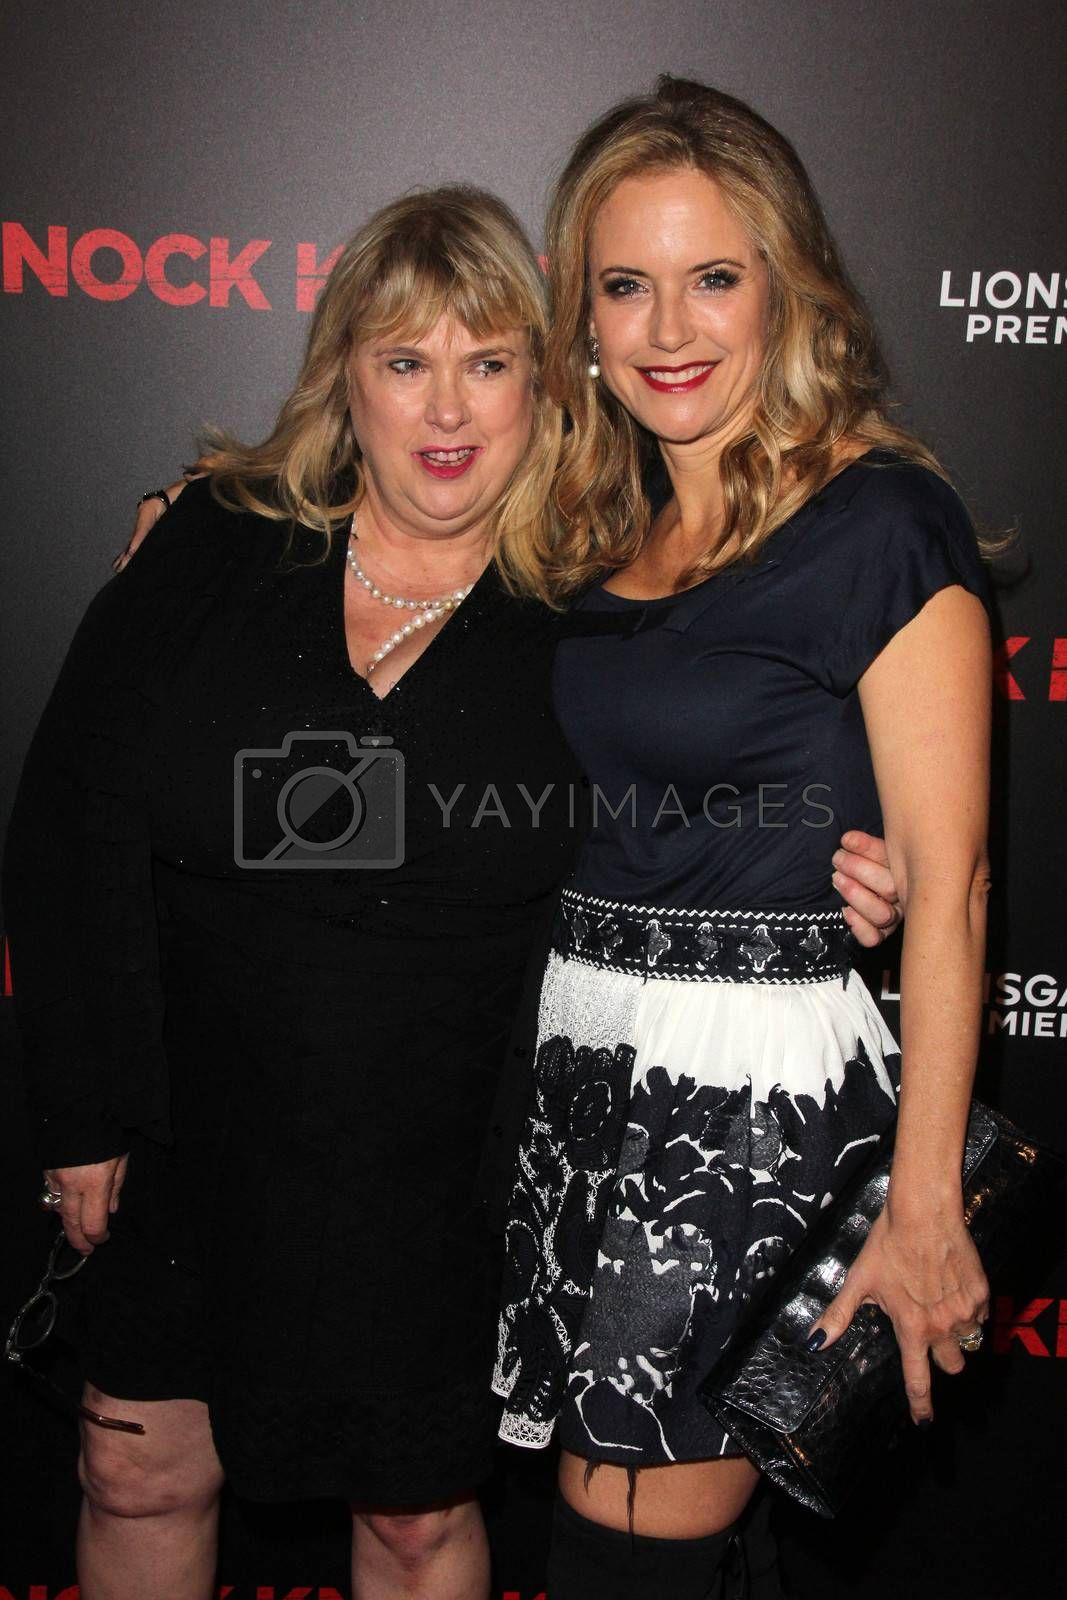 """Colleen Camp, Kelly Preston at the """"Knock Knock"""" Los Angeles Premiere, TCL Chinese Theater, Hollywood, CA 10-08-15/ImageCollect by ImageCollect"""